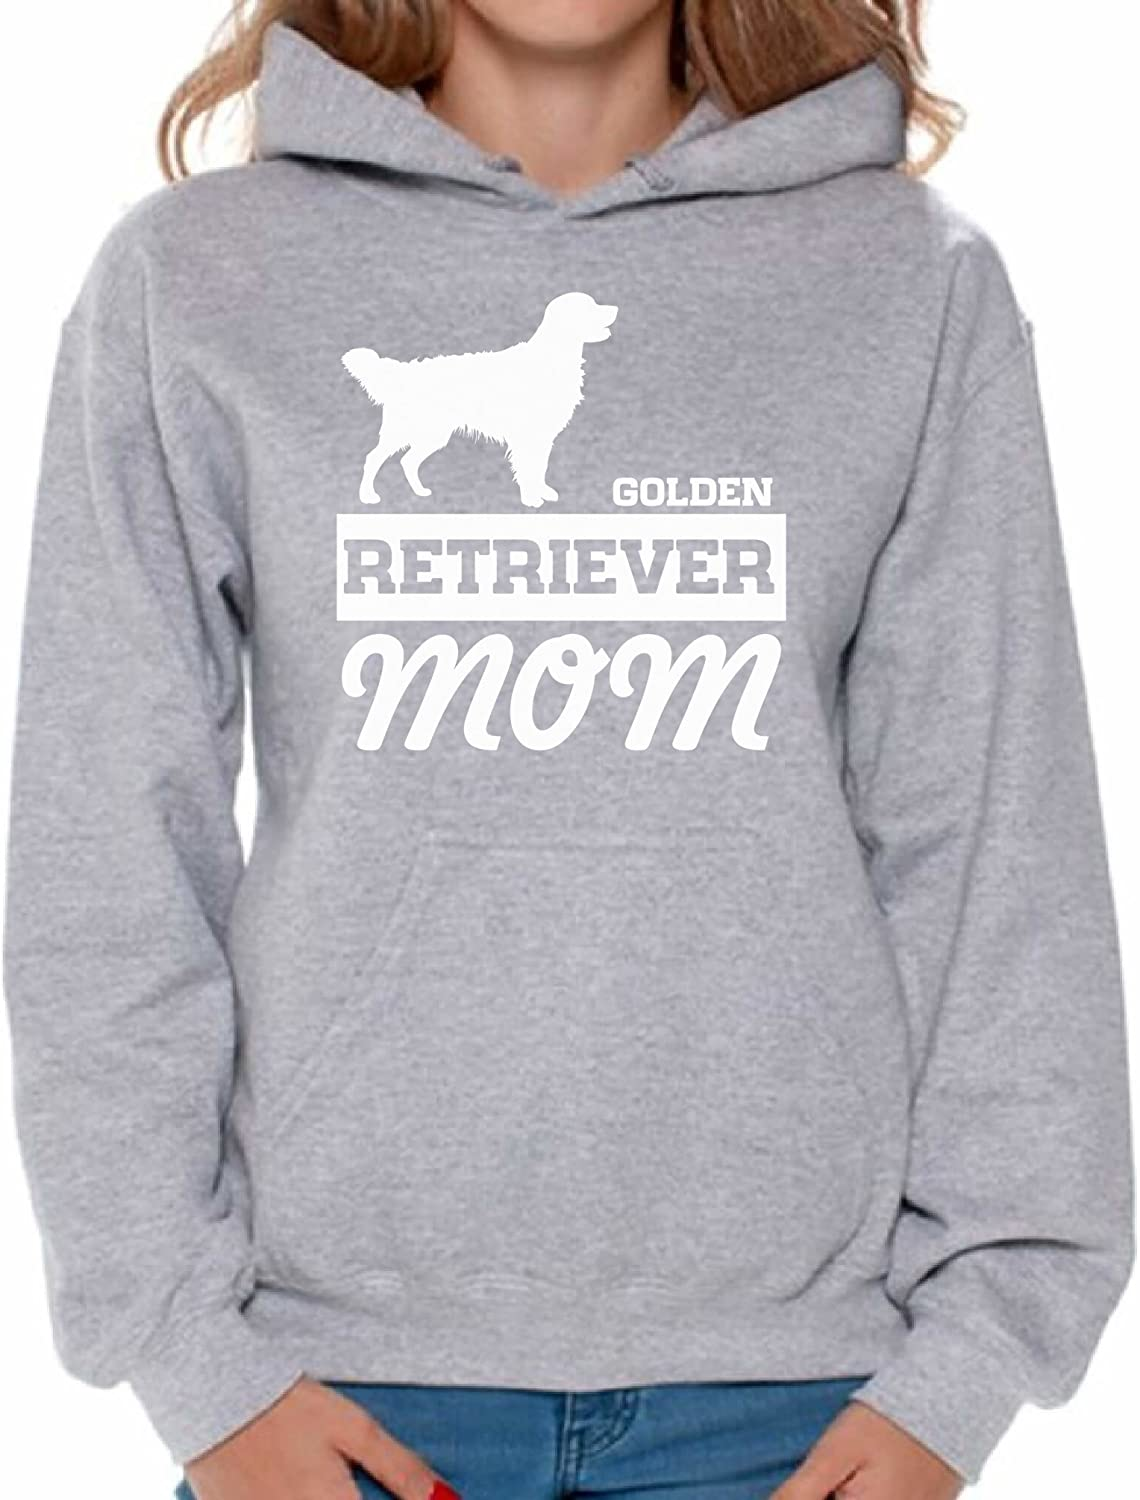 Today's only Awkward Styles Las Vegas Mall Women's Golden Retriever Hoodie Tops Graphic Mom